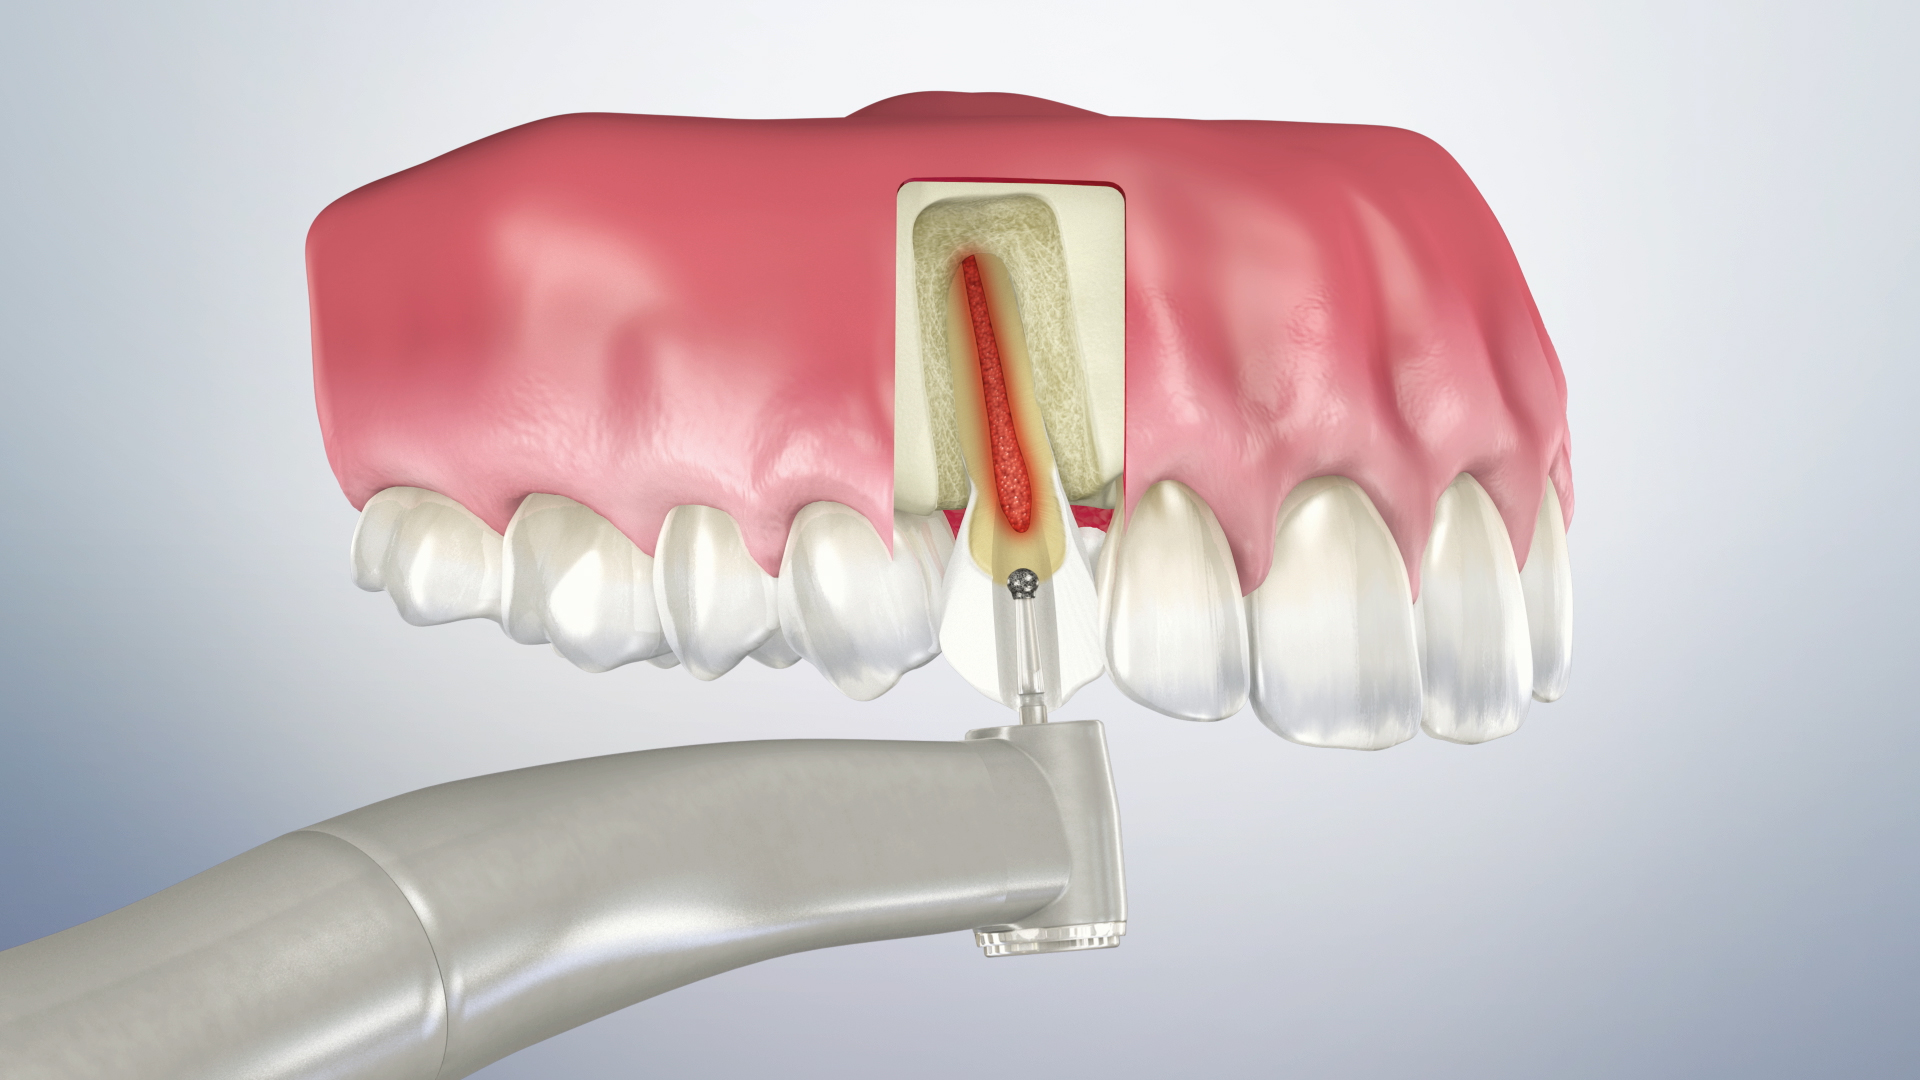 Thumbnail for a video on Root Canal